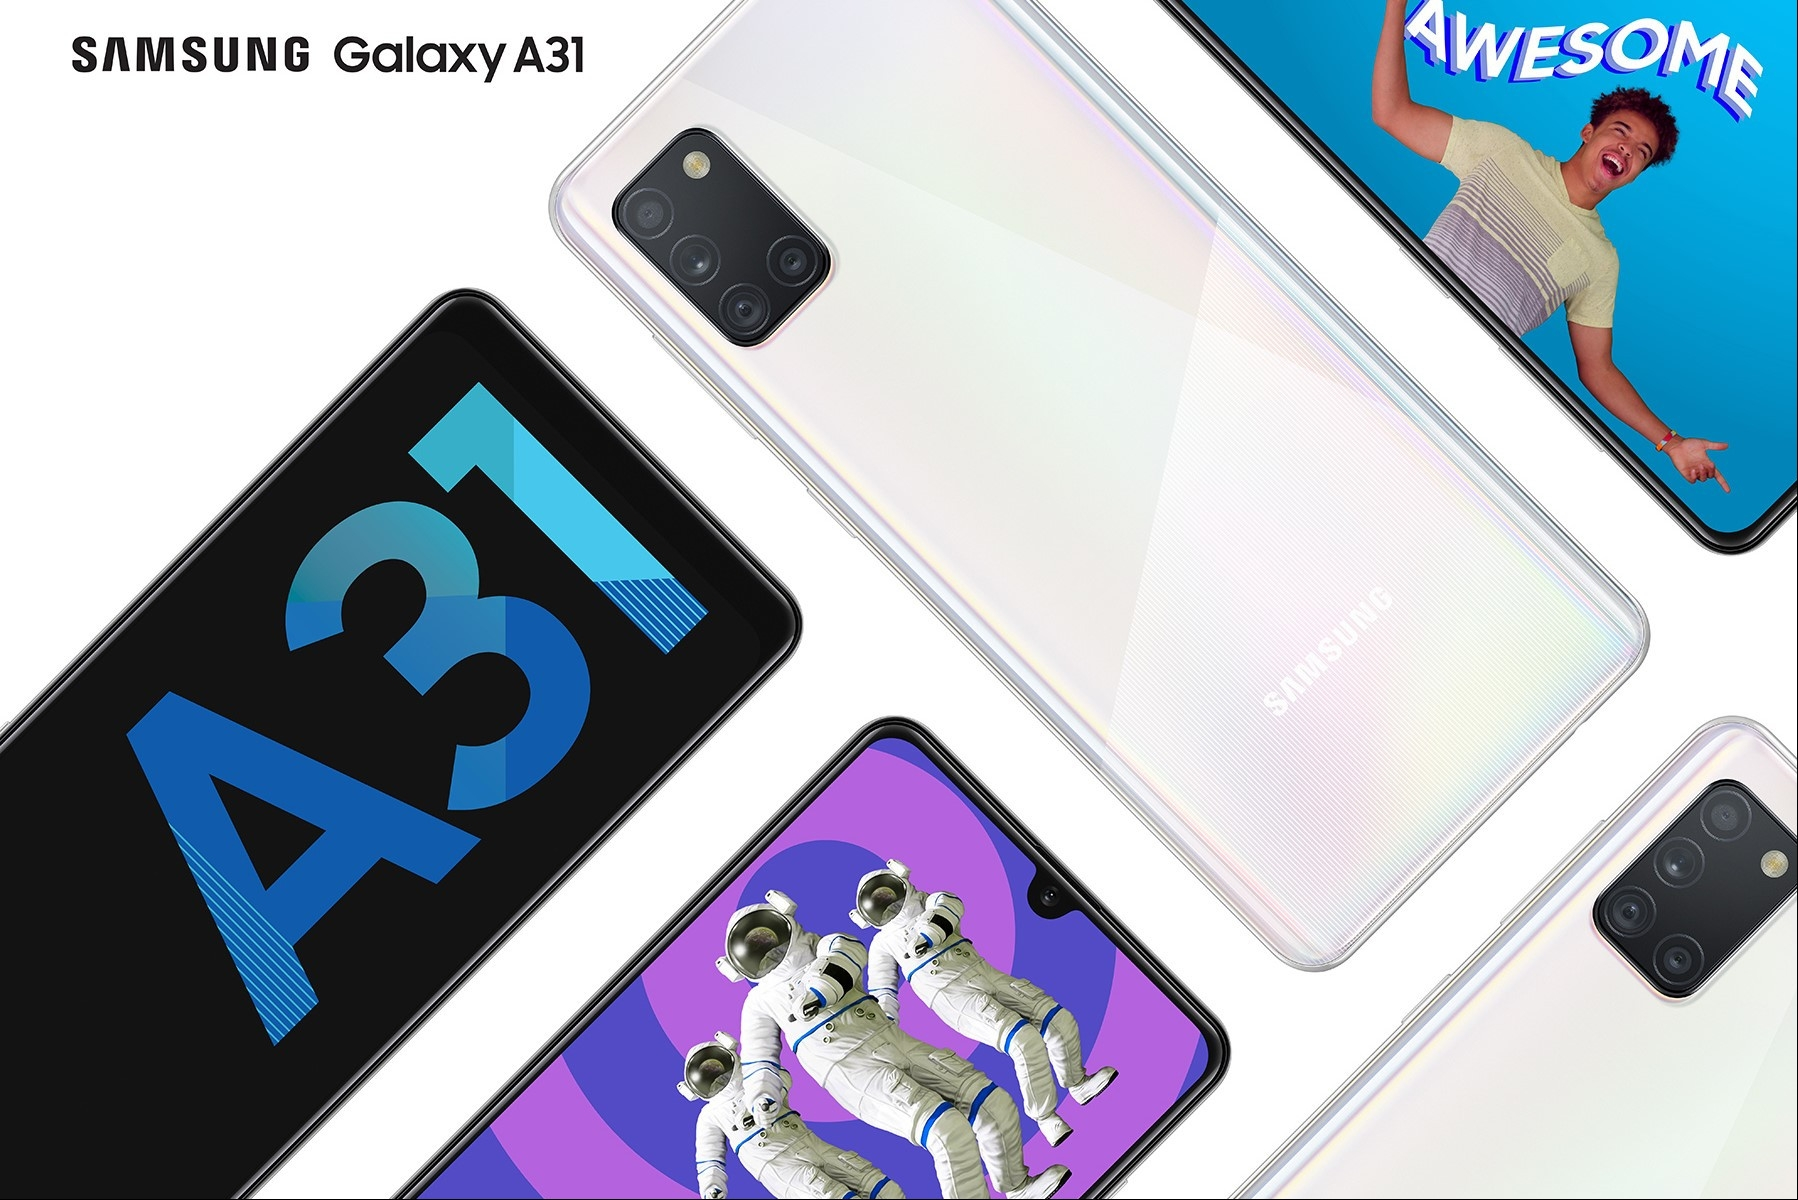 samsung to release new low cost smartphone featuring five cameras